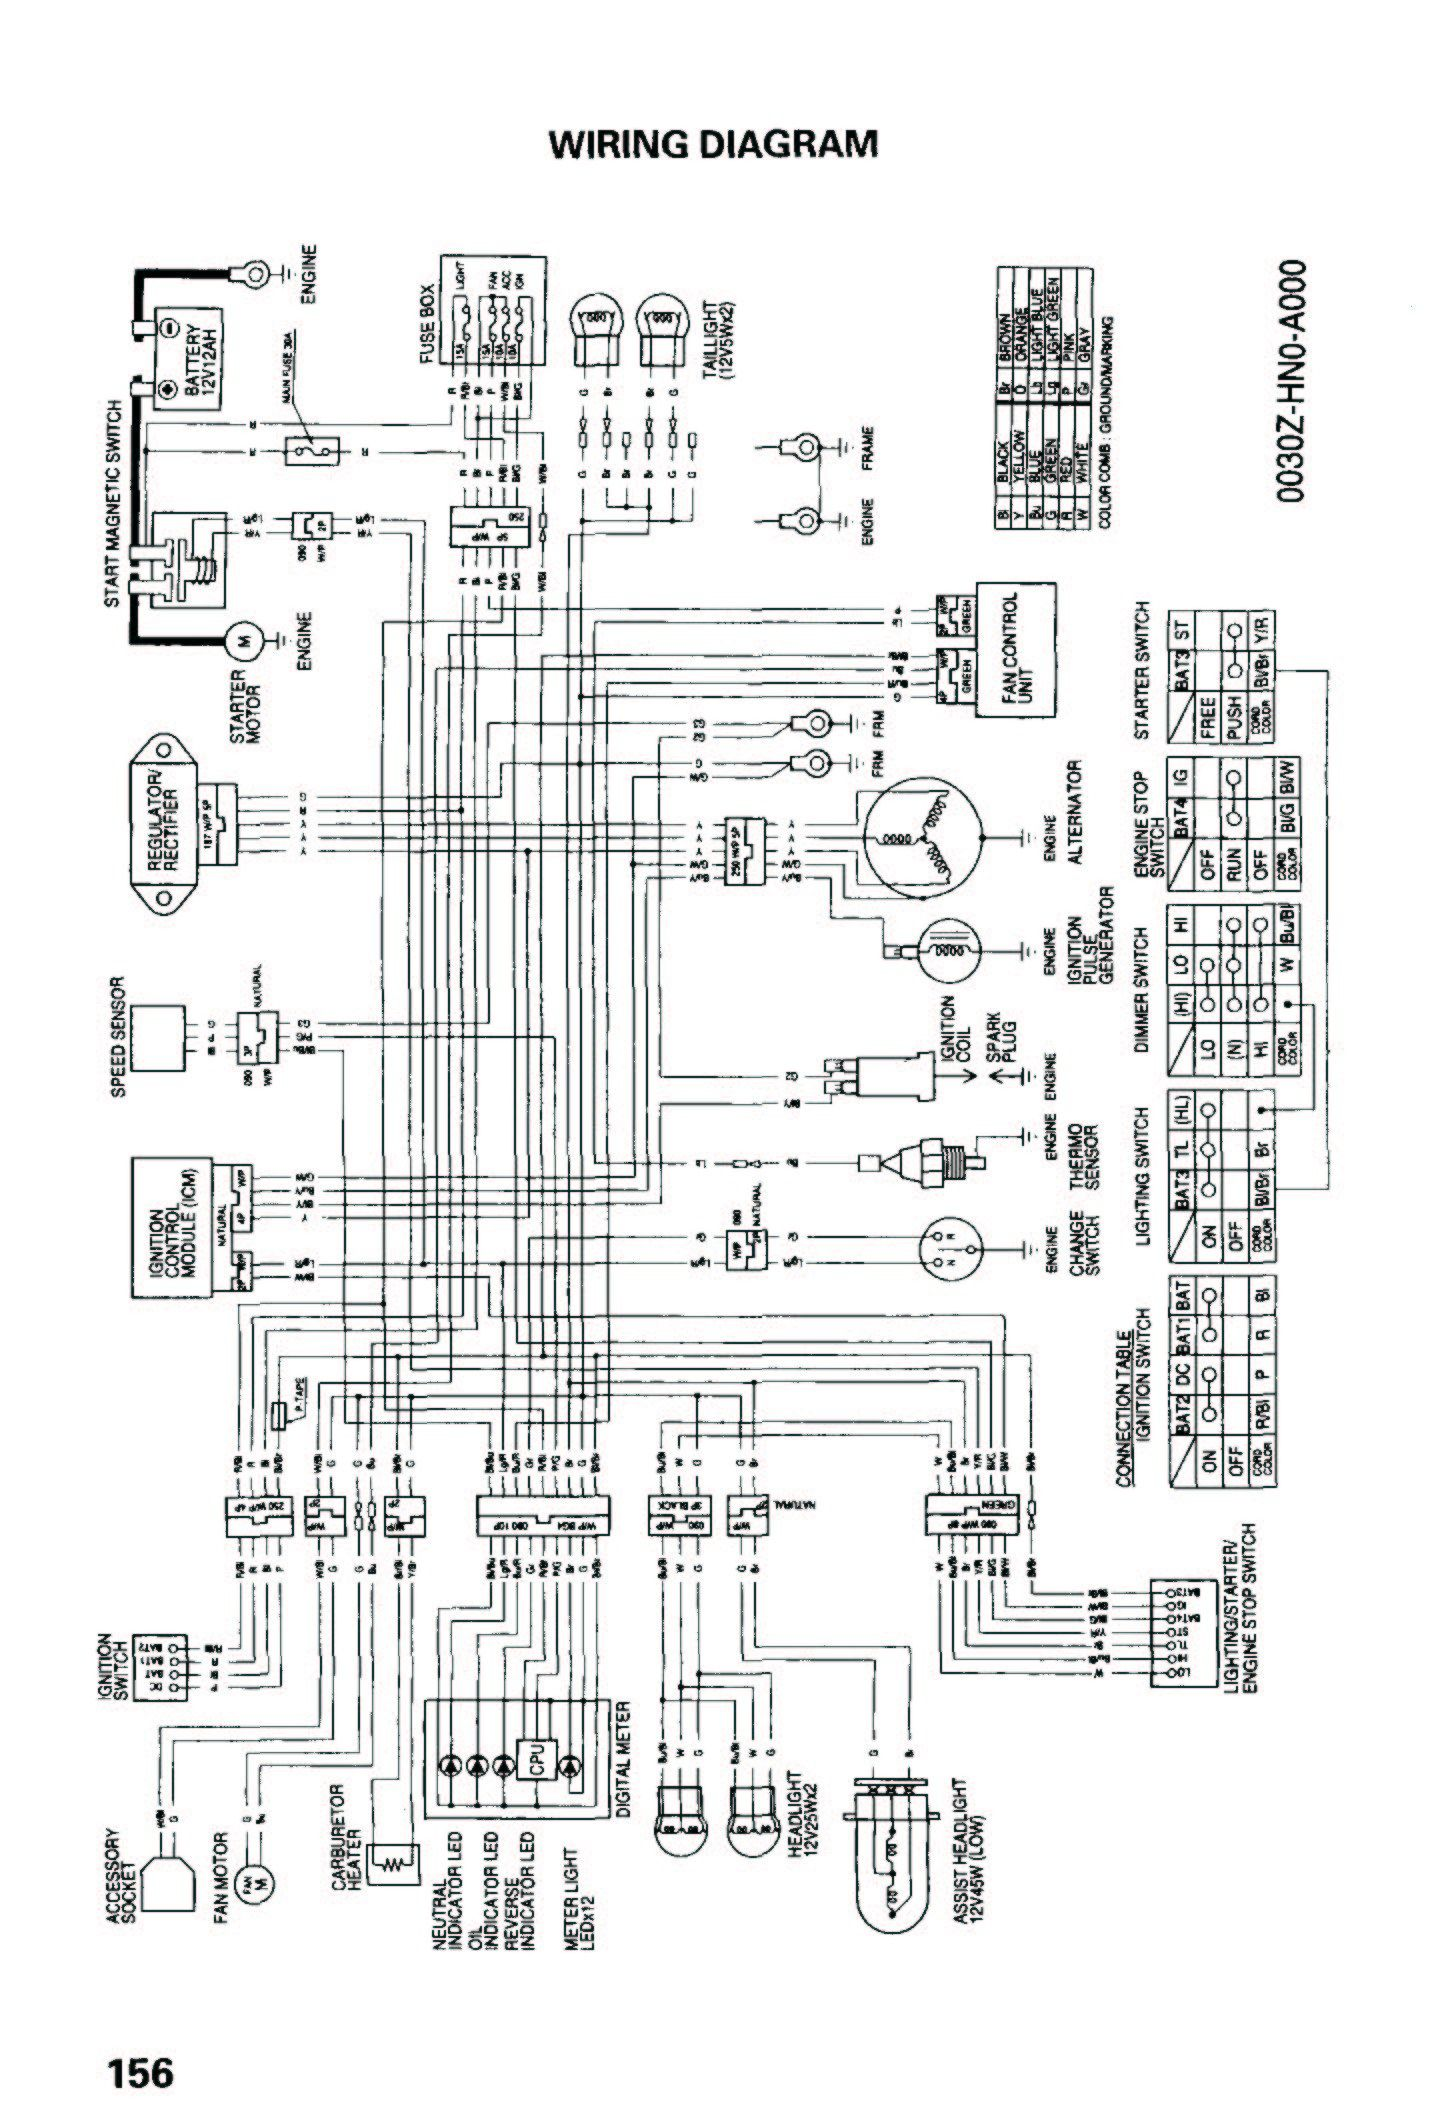 Honda Trx 300 Wiring Diagram With Images